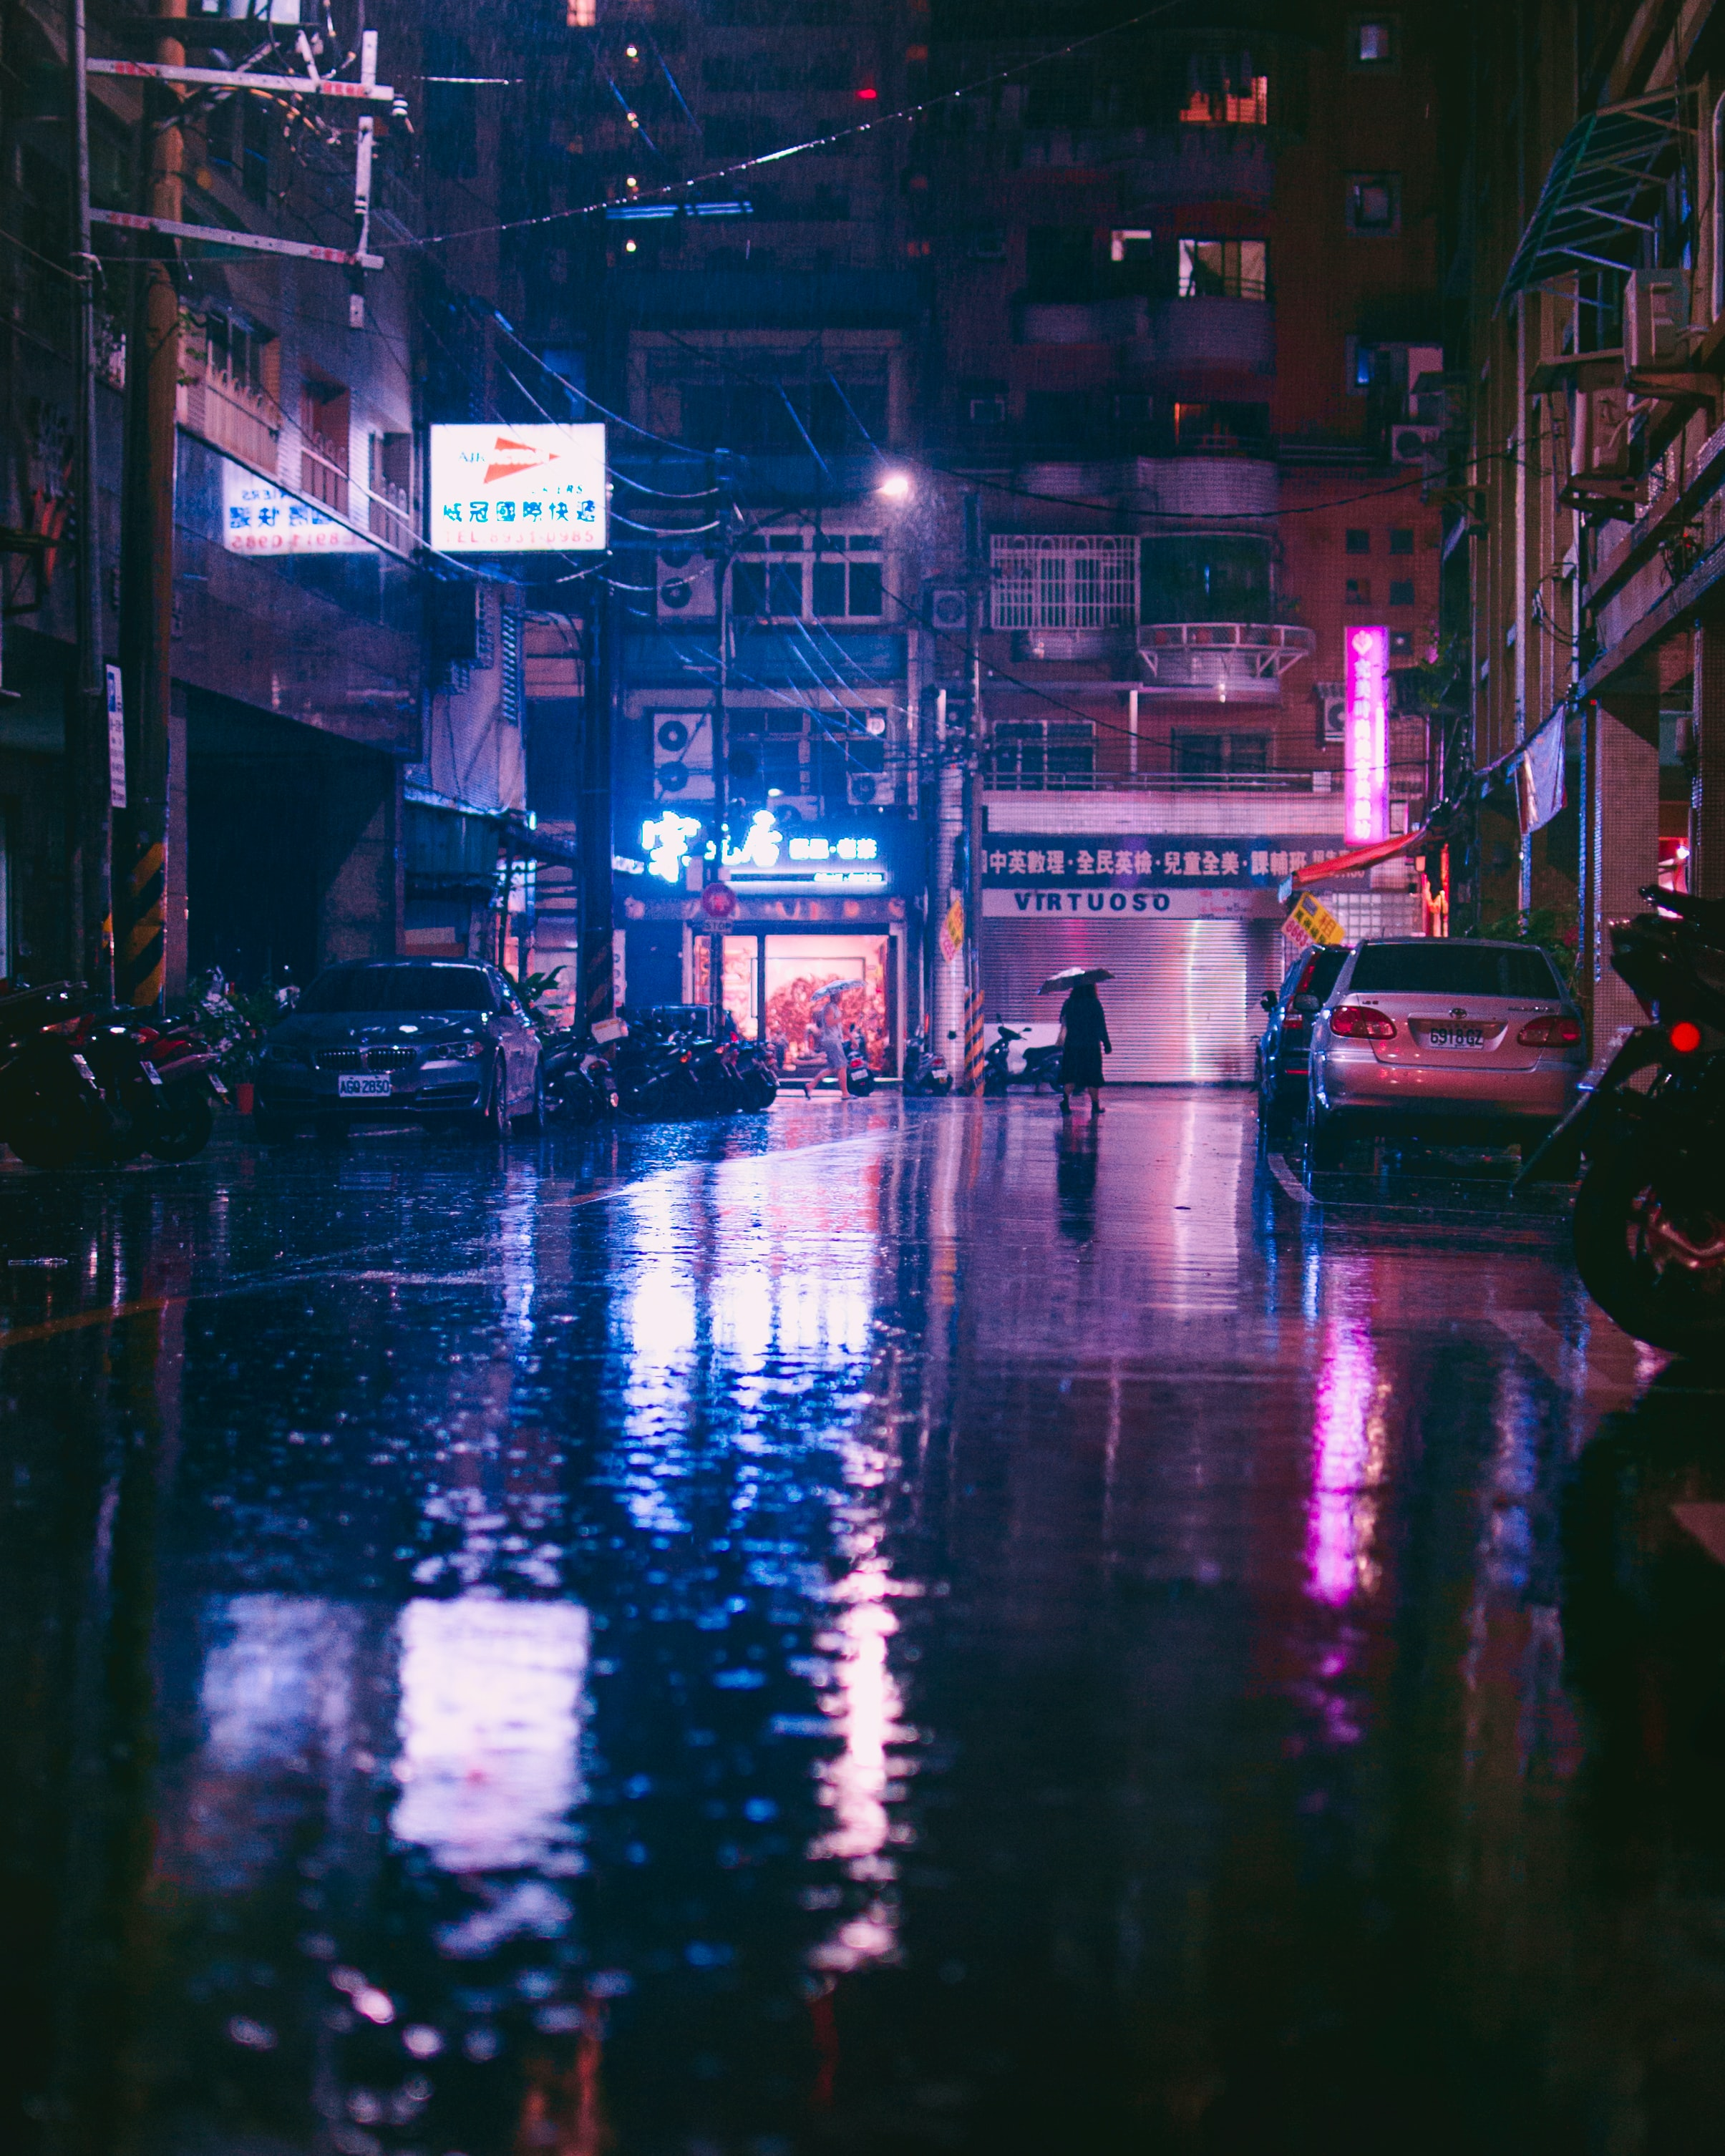 rainy cityscape by night